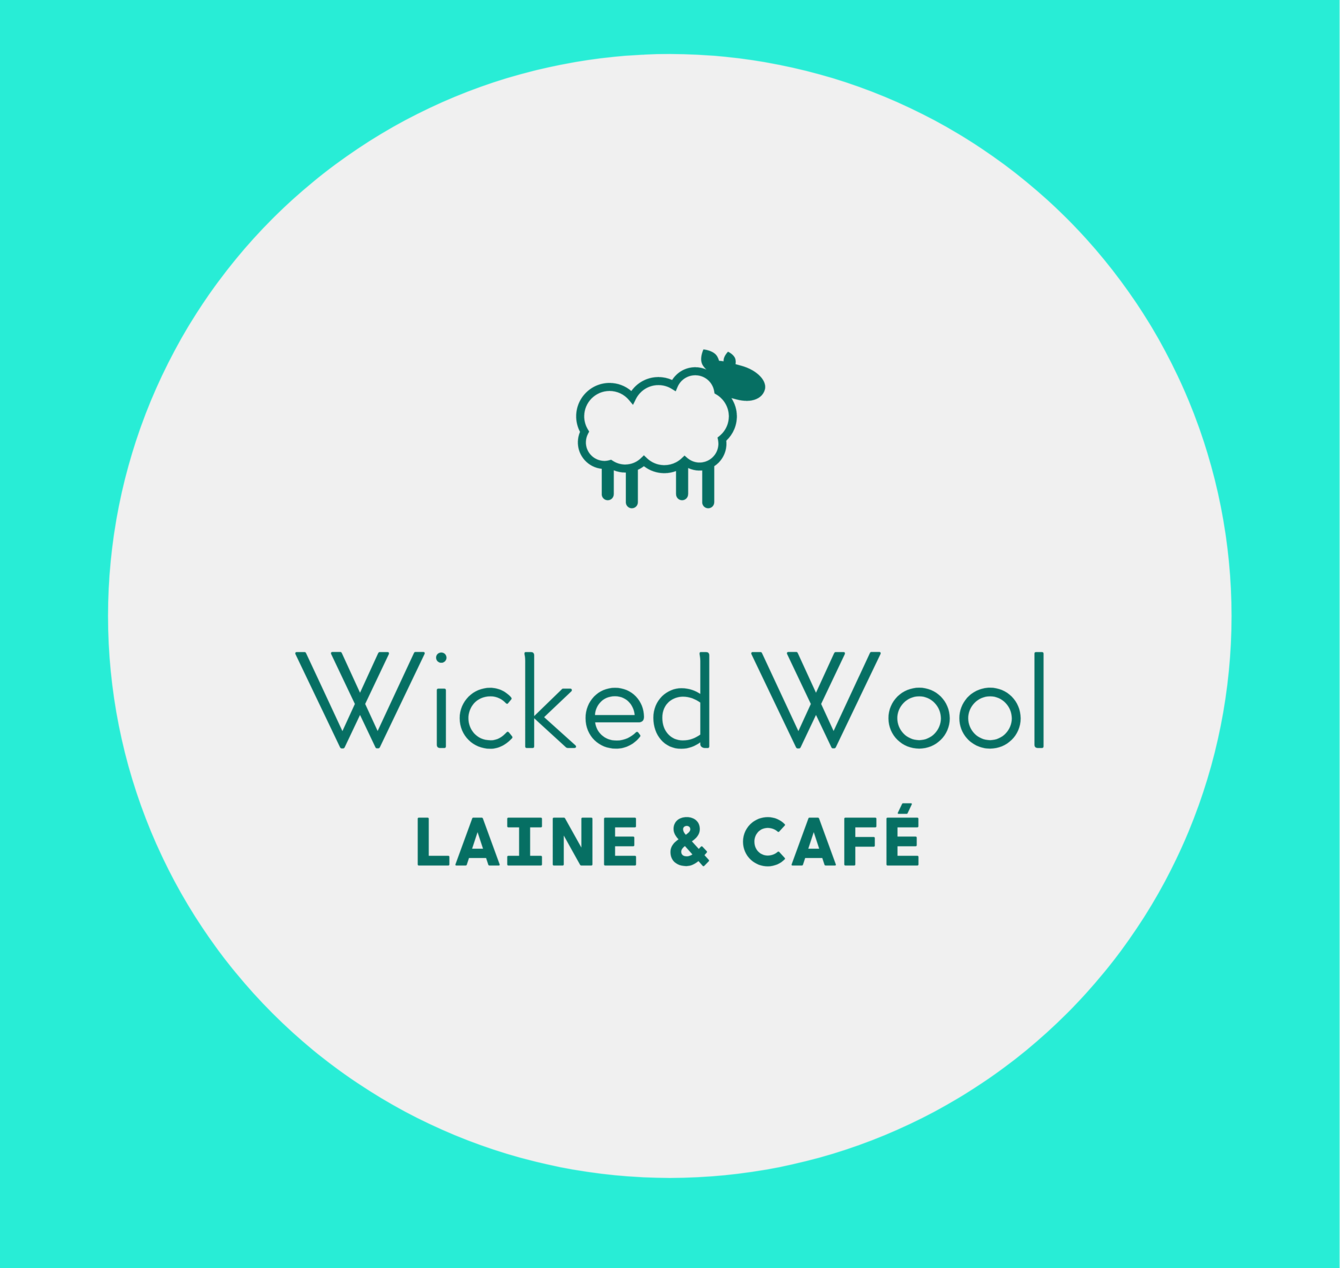 Wicked Wool